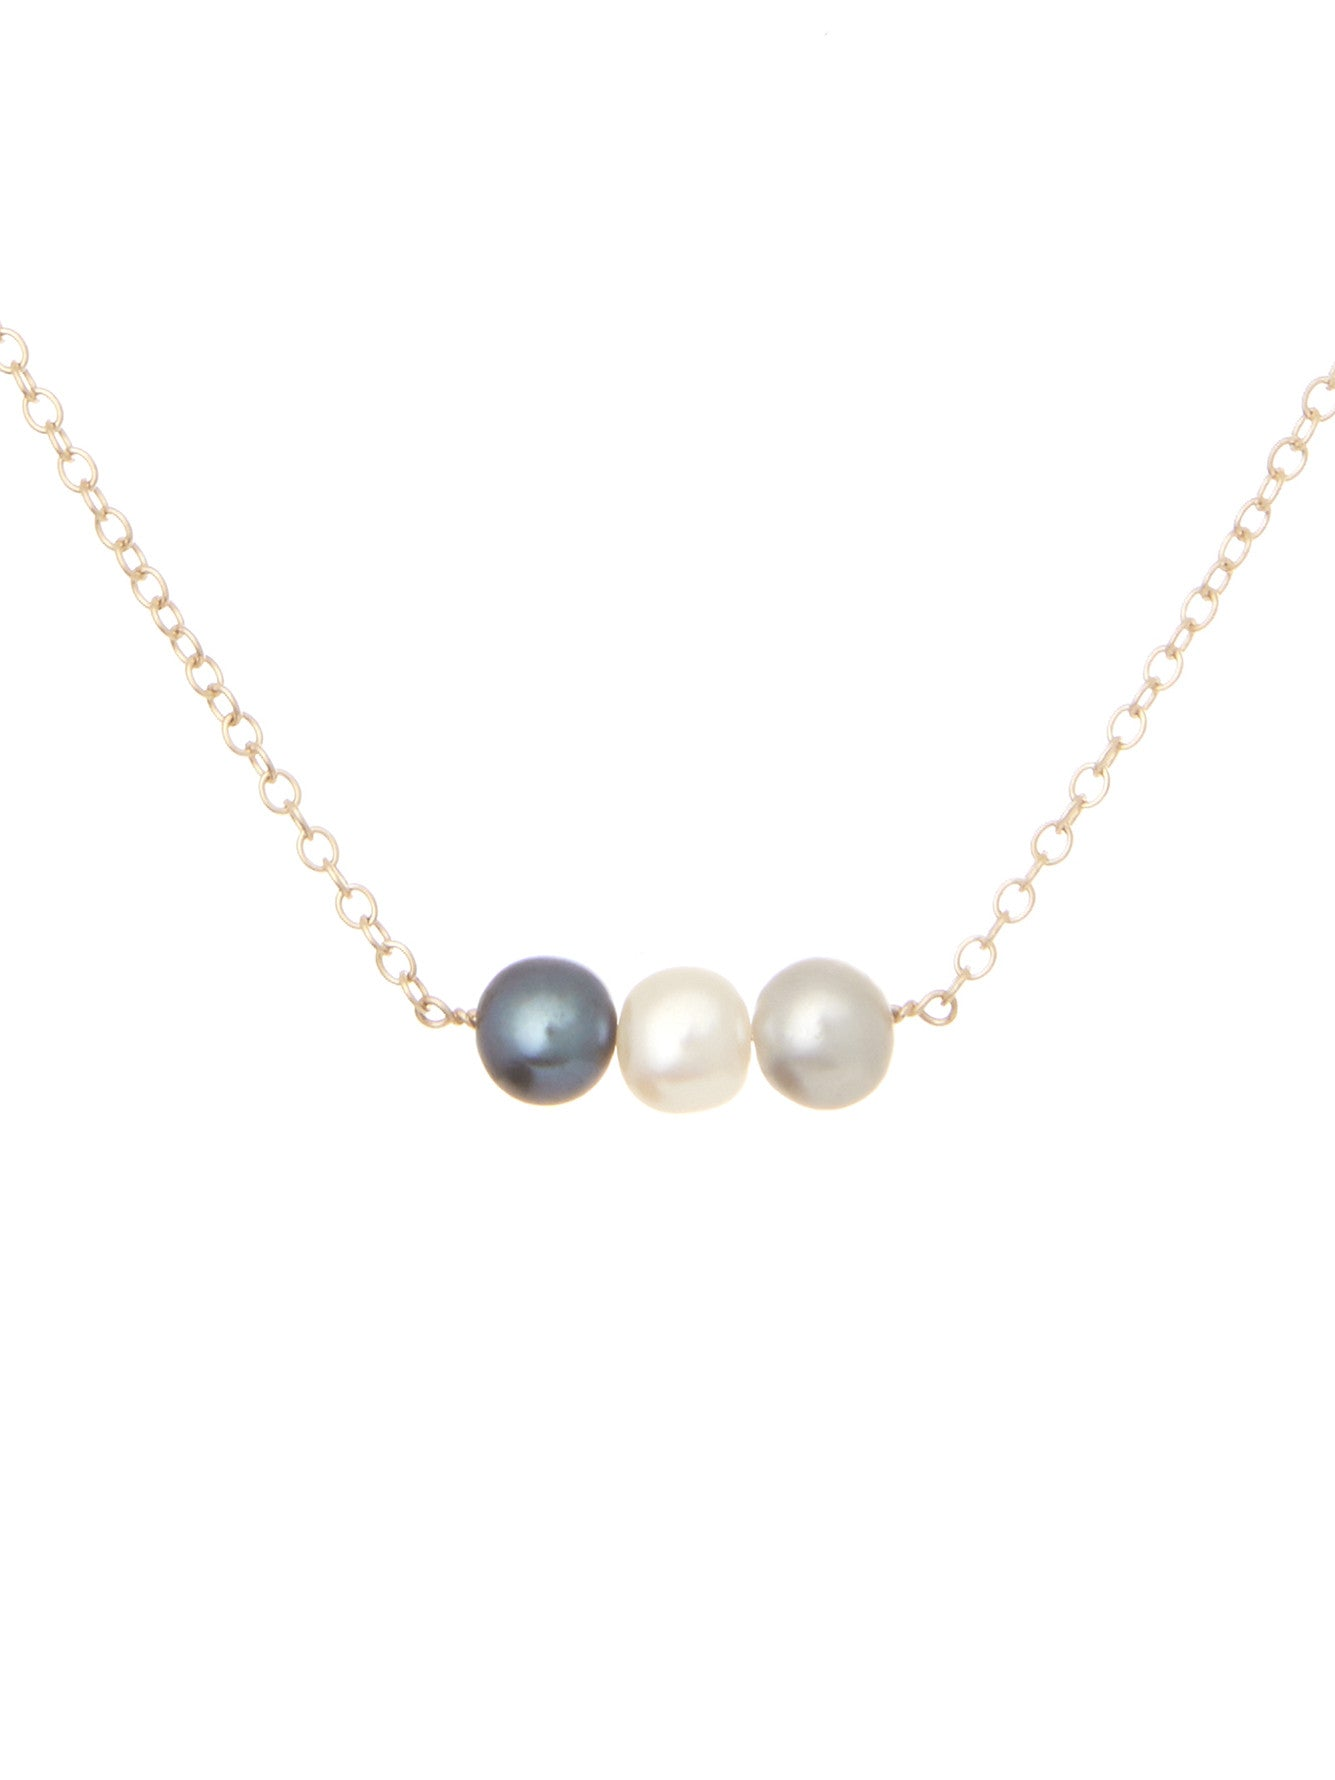 pearl size knotted freshwater store yangtze mixed pearls in products sizes colors and color with necklace